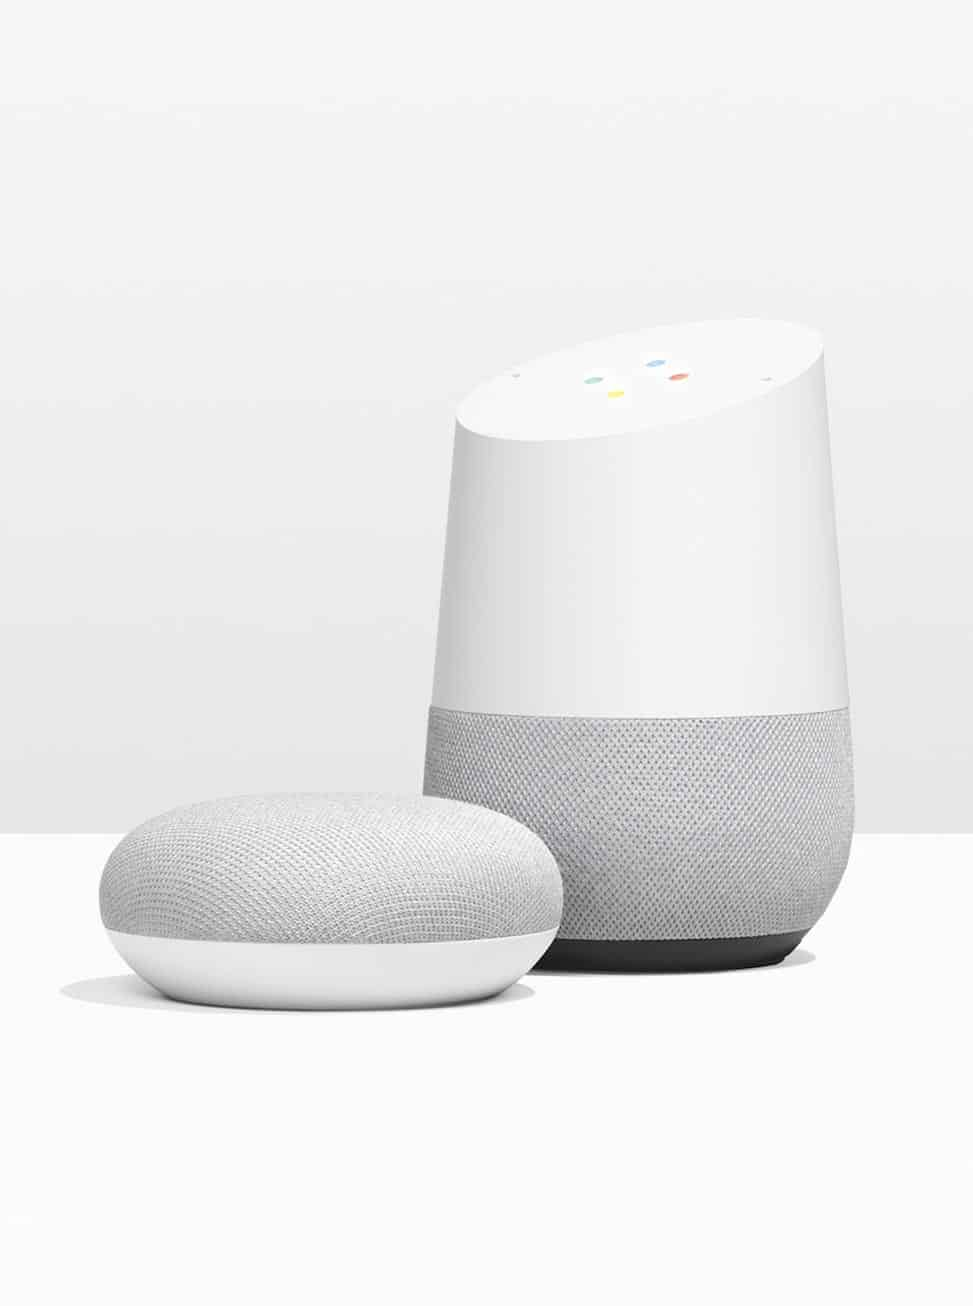 Google Home and Google Home Mini smart speakers